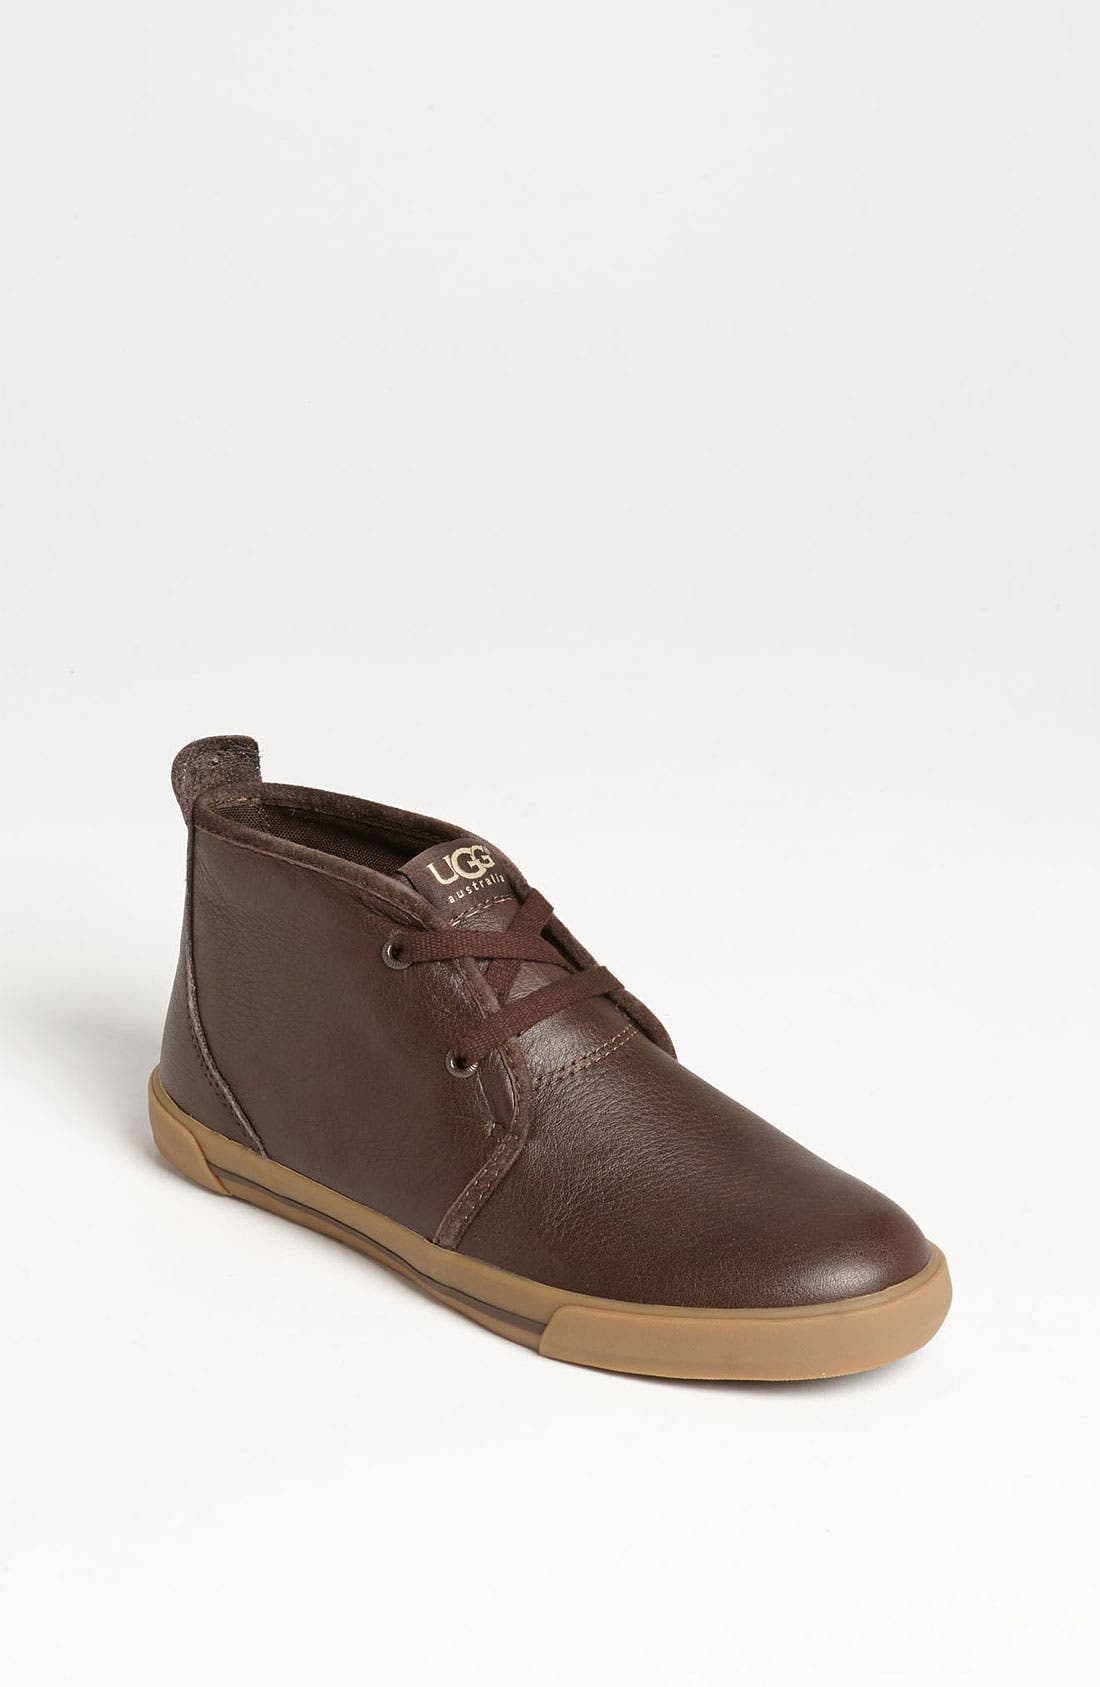 Alternate Image 1 Selected - UGG® Australia 'Brockman' Sneaker (Toddler, Little Kid & Big Kid)